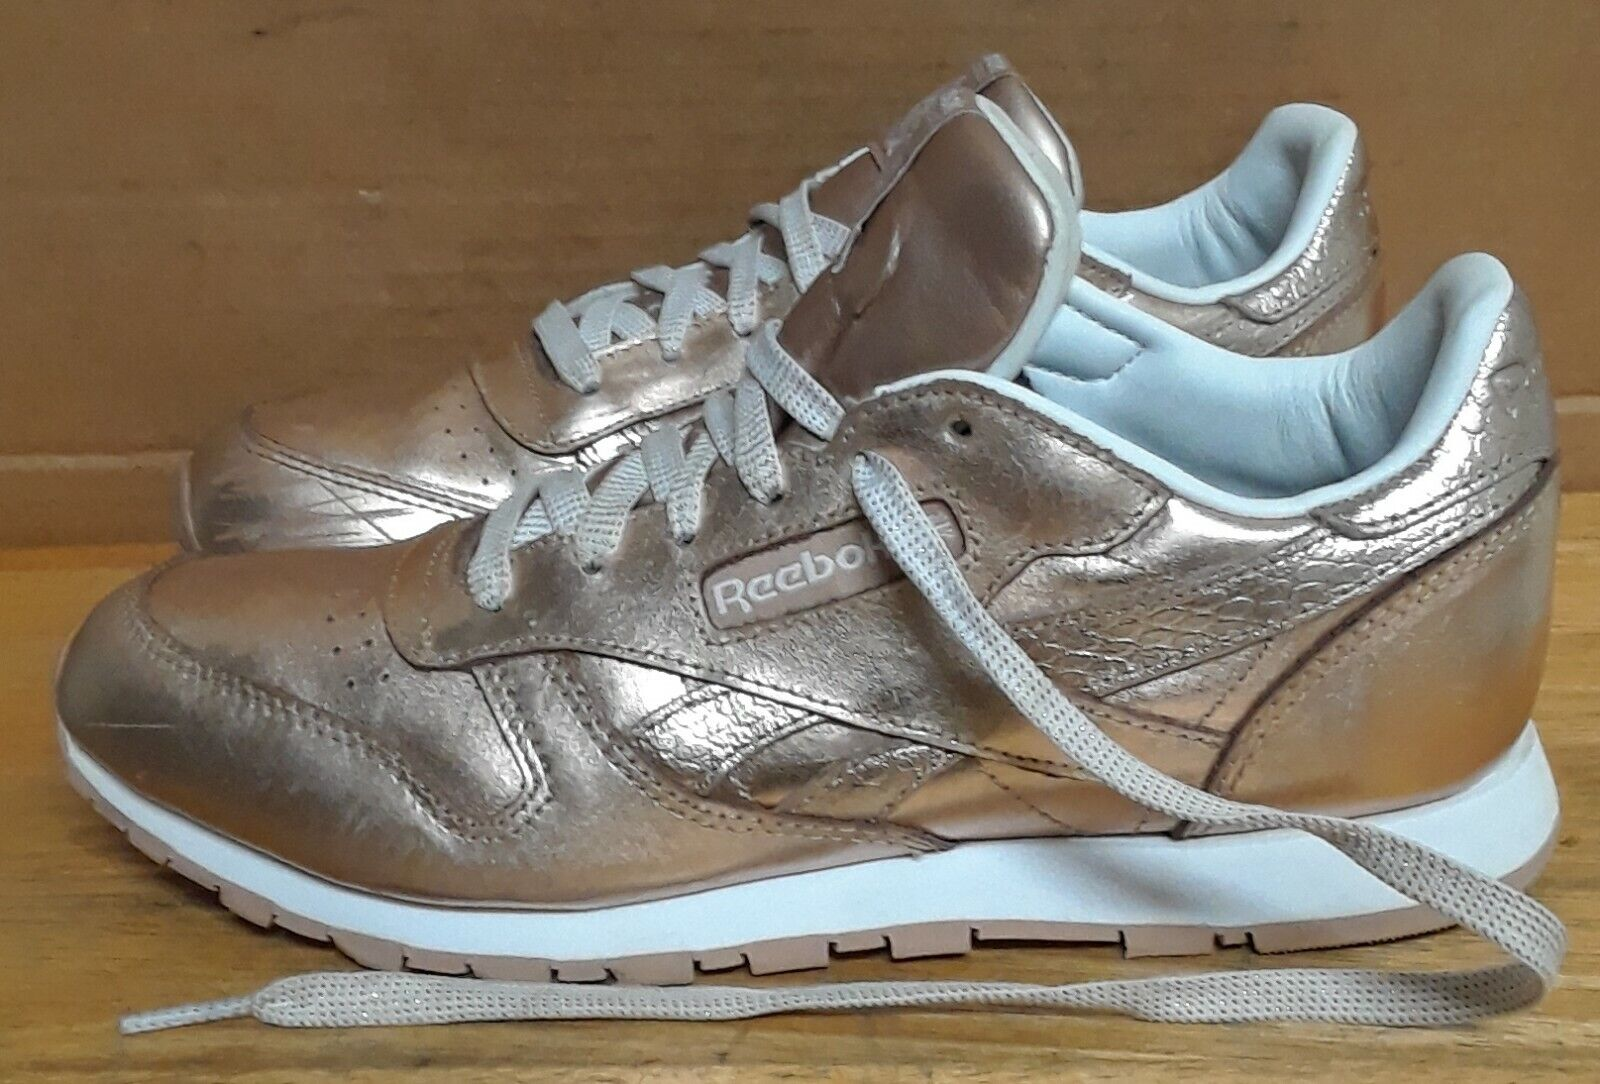 REEBOK CLASSIC LEATHER MELTED METAL WOMEN'S SNEAKERS. Sz 6